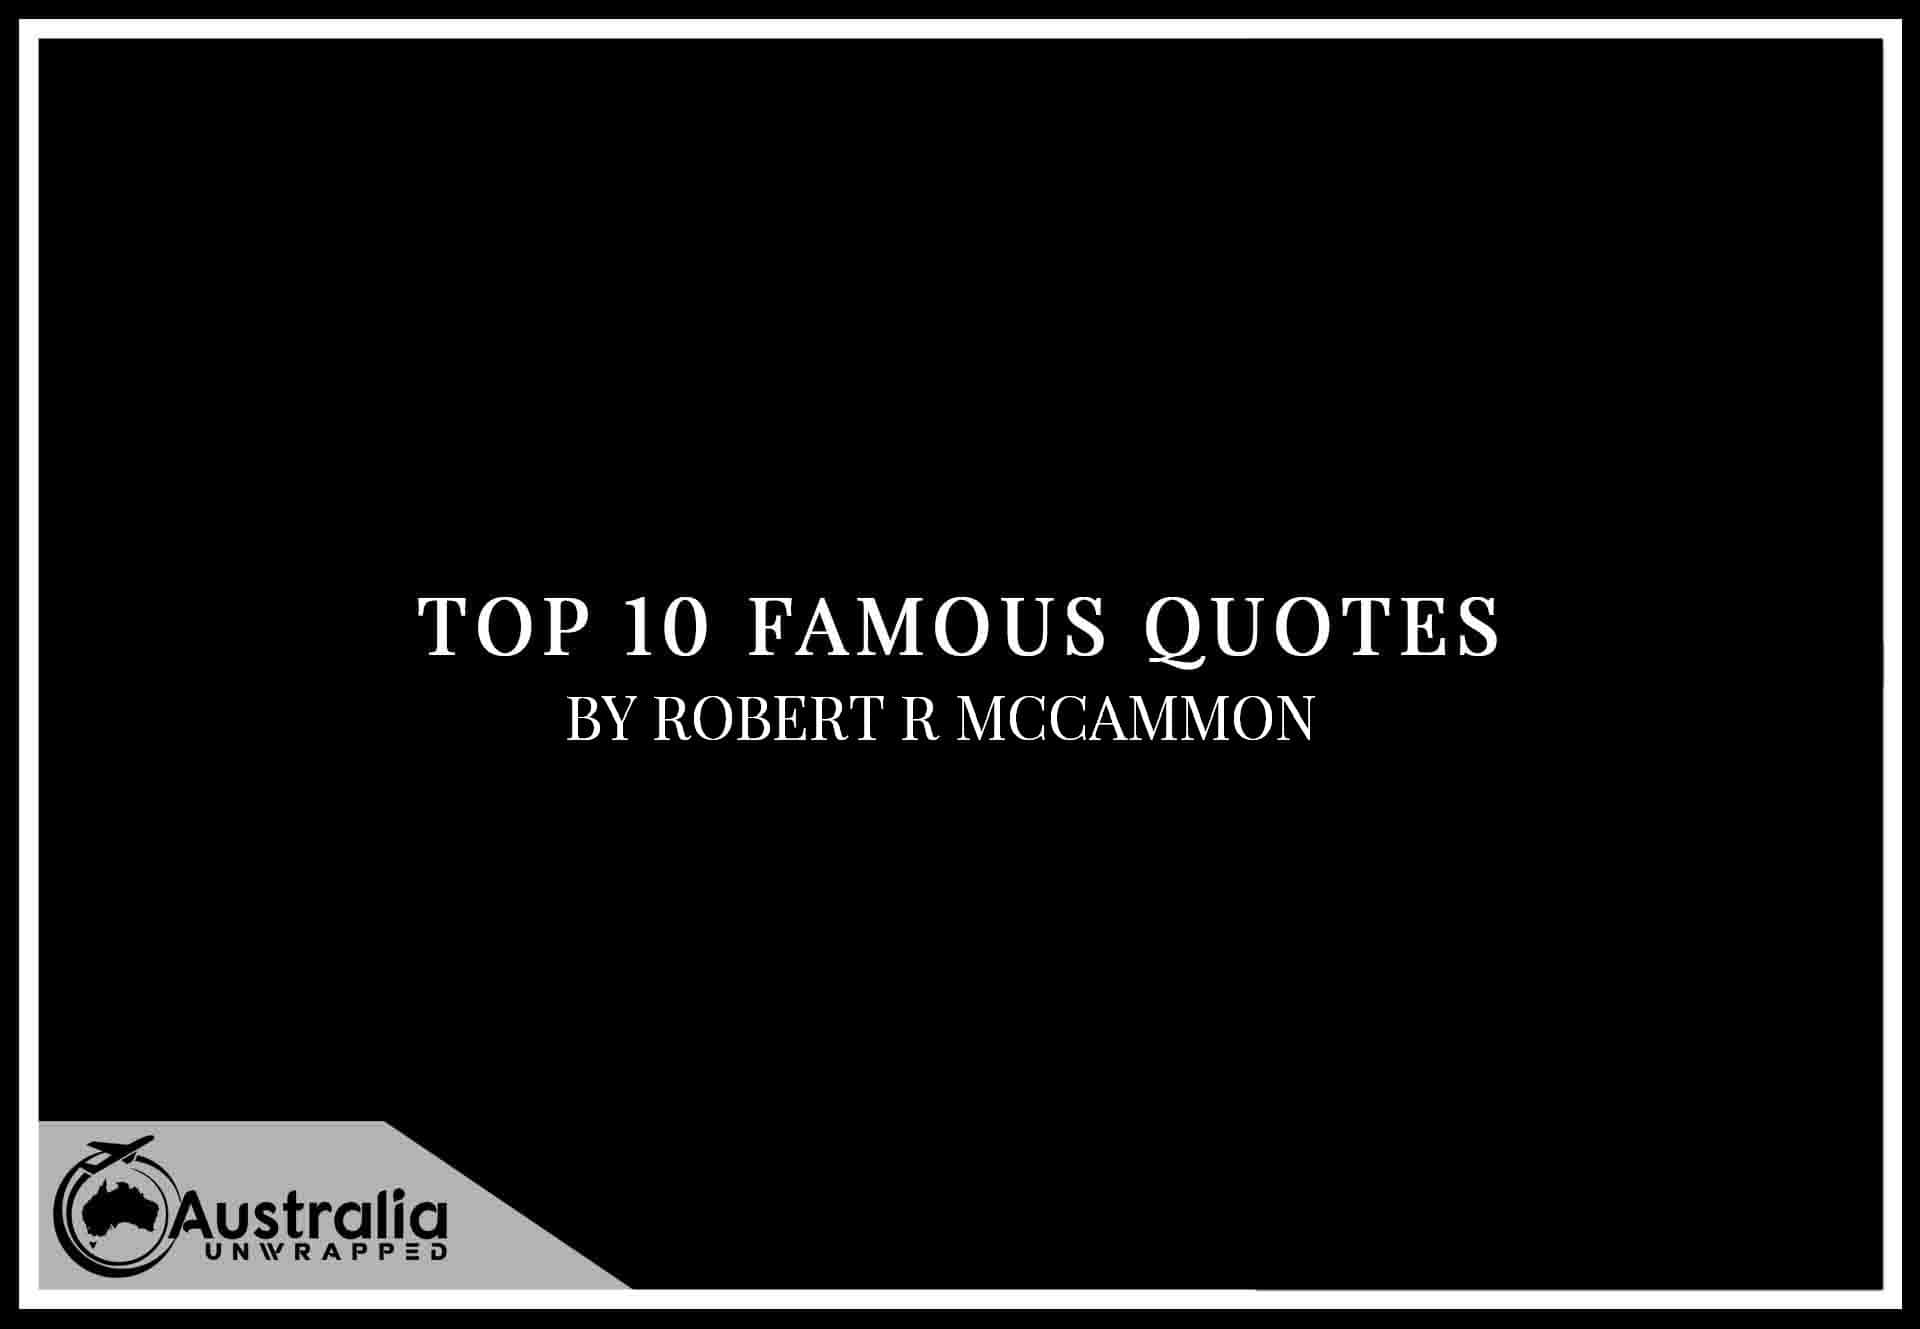 Robert R. McCammon's Top 10 Popular and Famous Quotes